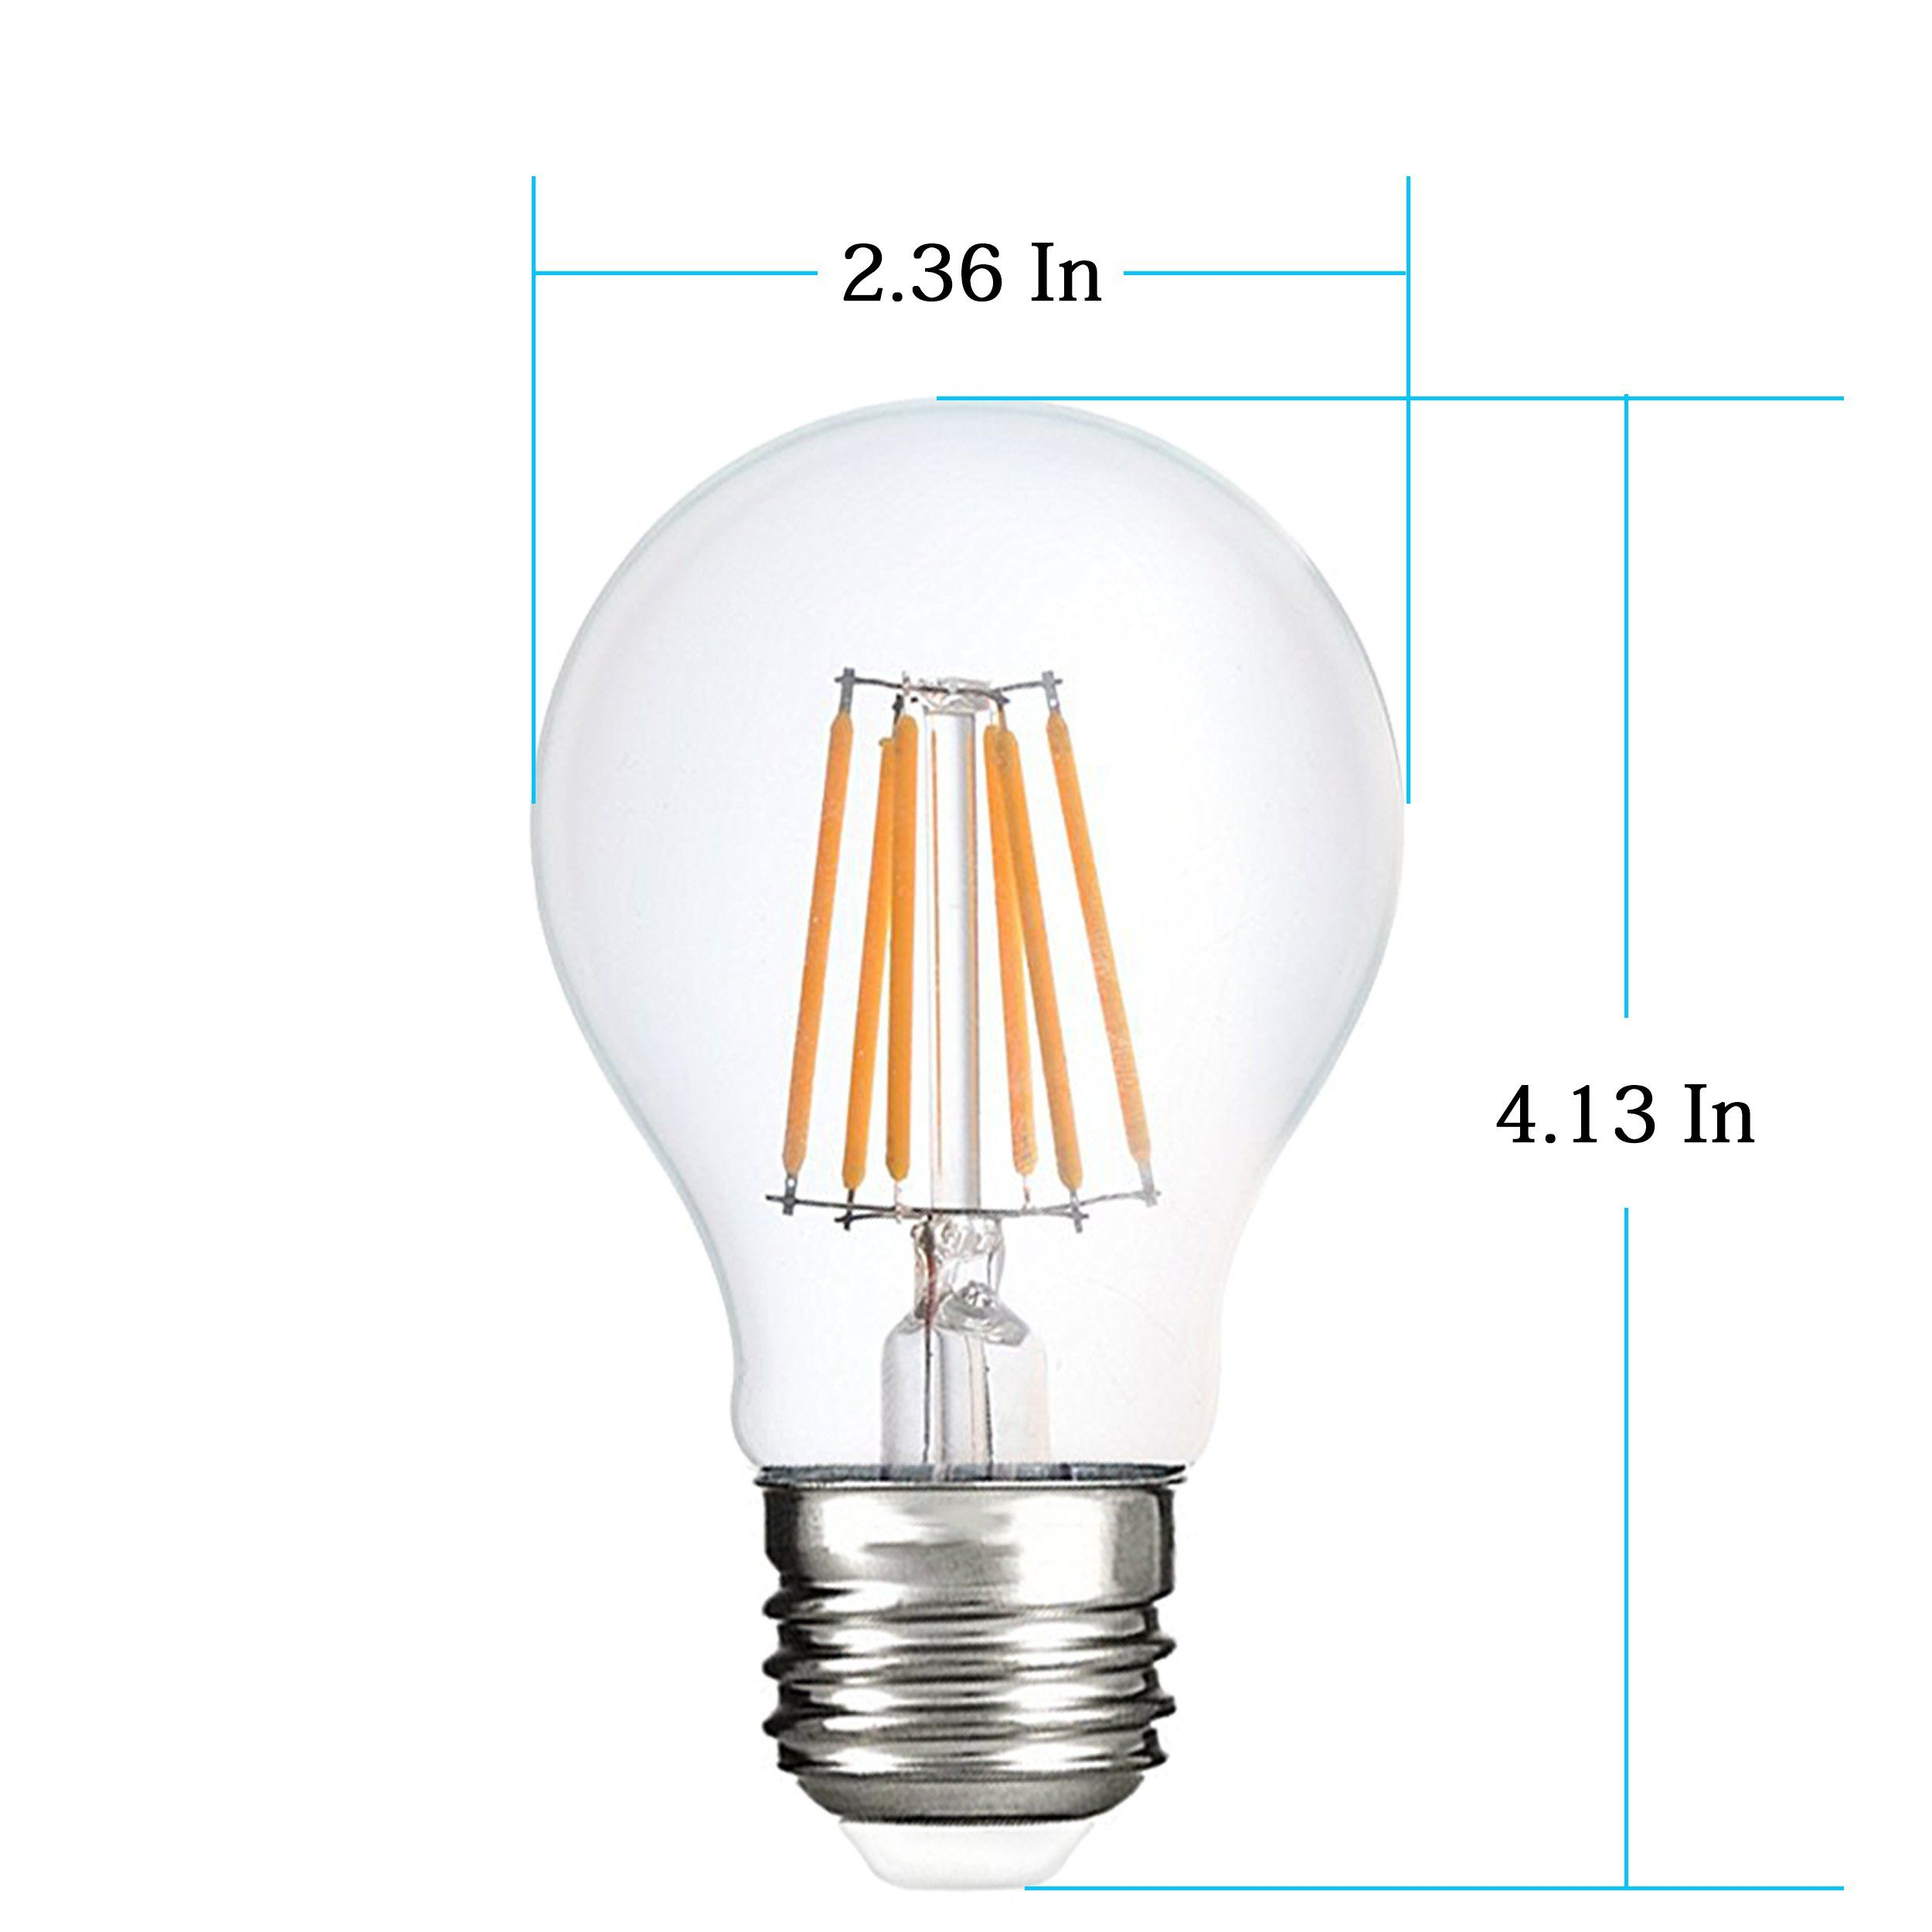 Dimmable Led A19 Bulb 75 Watt Incandescent Bulb Replace 7 5 Watt Led Filament Light Bulbs 4000k Natural White Medium Base E26 Fil Light Bulb Filament Bulb Bulb